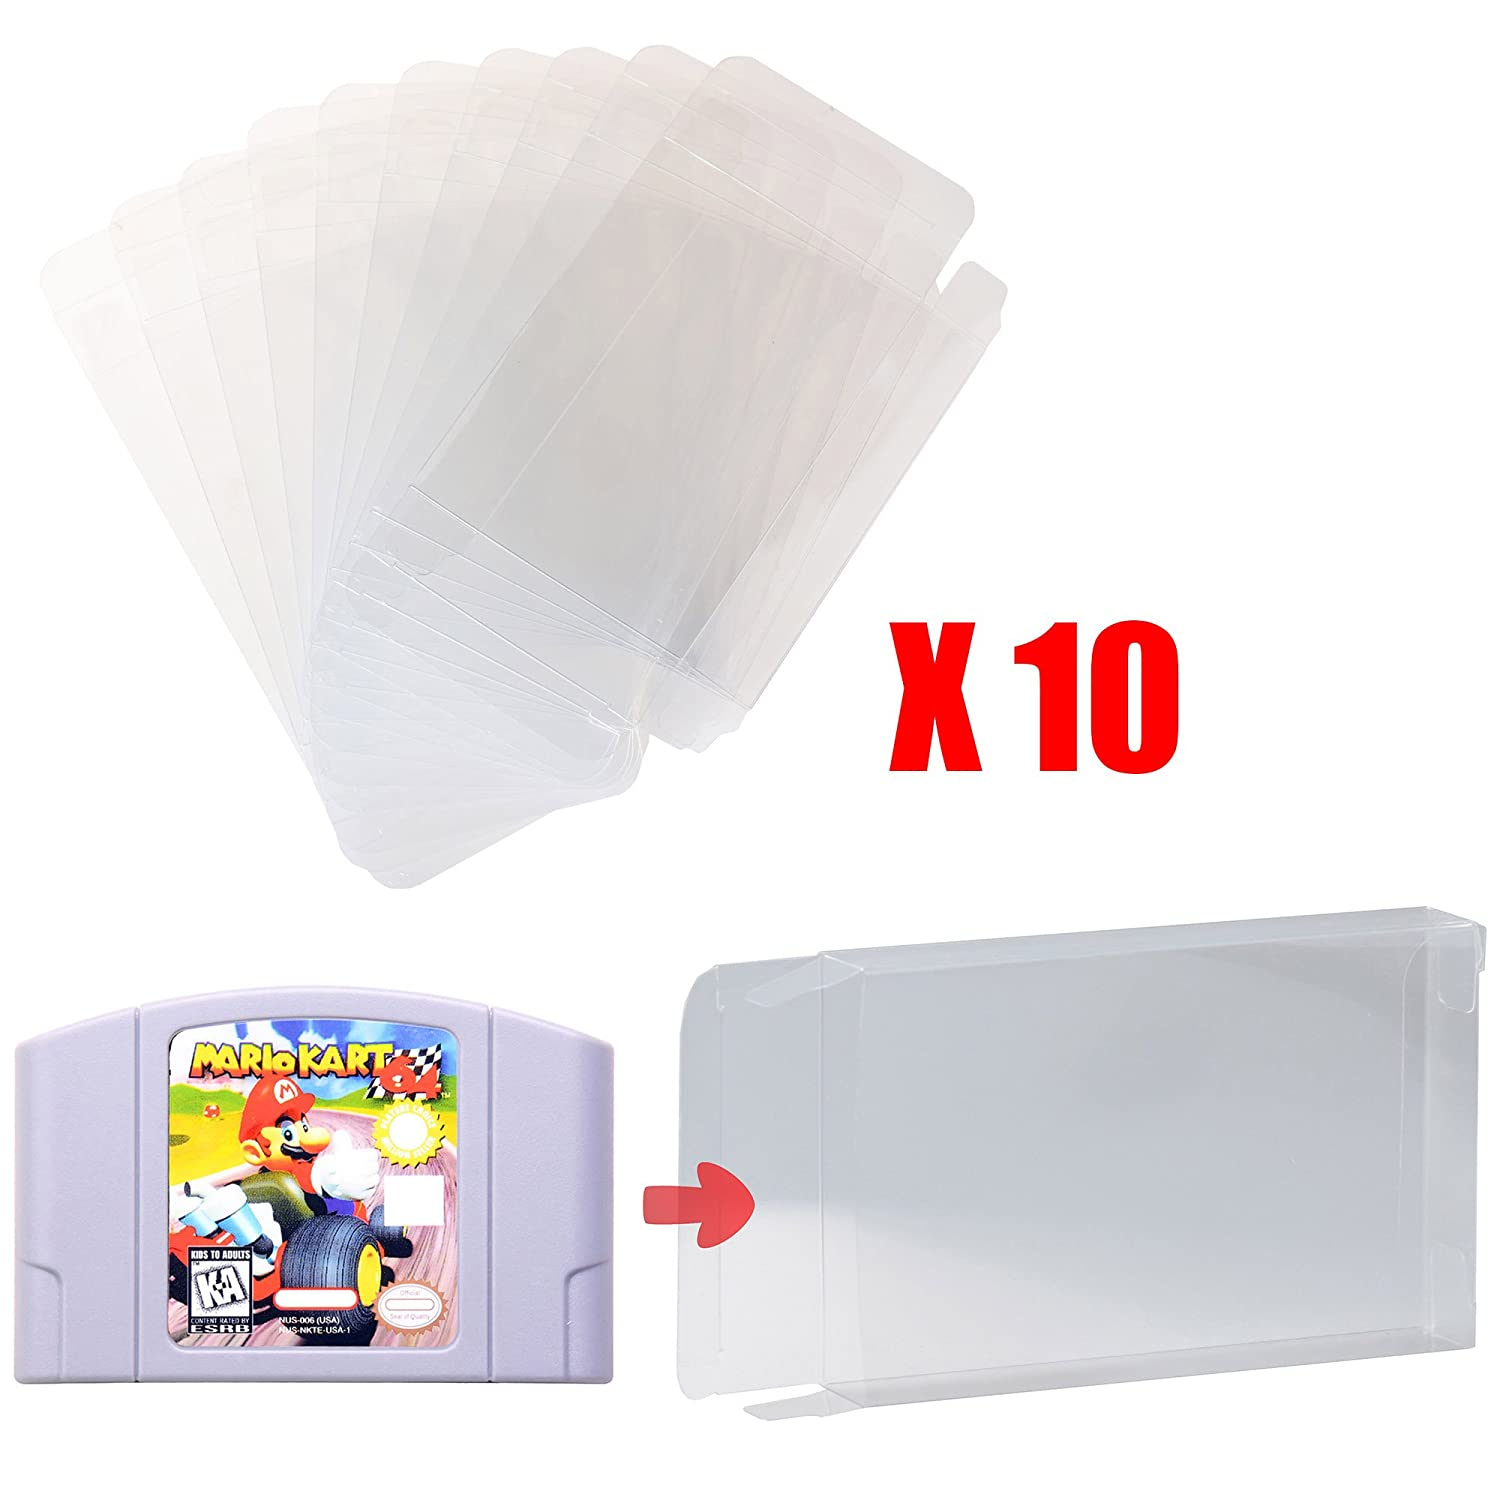 Mcbazel LOT 10 Clear Case Sleeve Protector for Nintendo N64 Games Cartridge (Set of 10)